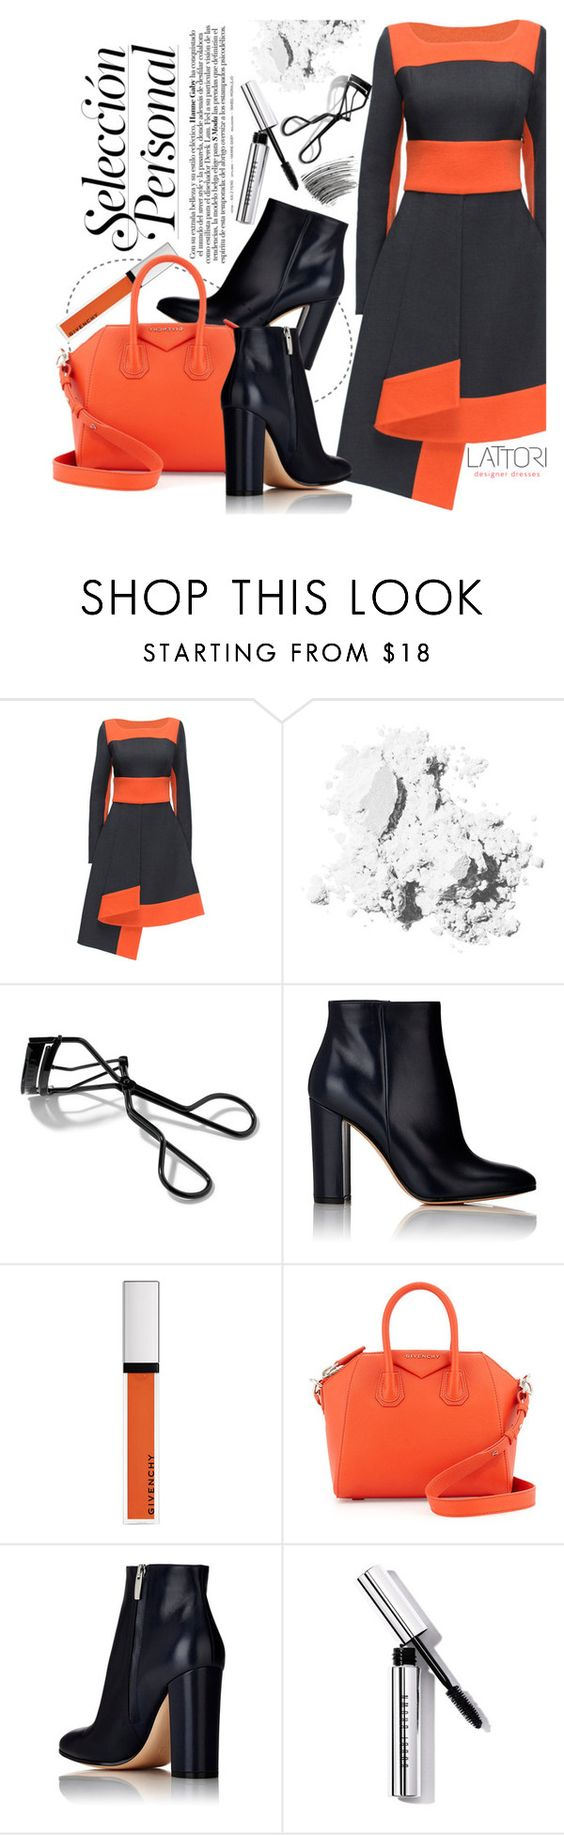 """Lattori Dress"" by pokadoll ❤ liked on Polyvore featuring moda, Lattori, Bobbi Brown Cosmetics, Gianvito Rossi, Givenchy y lattori"